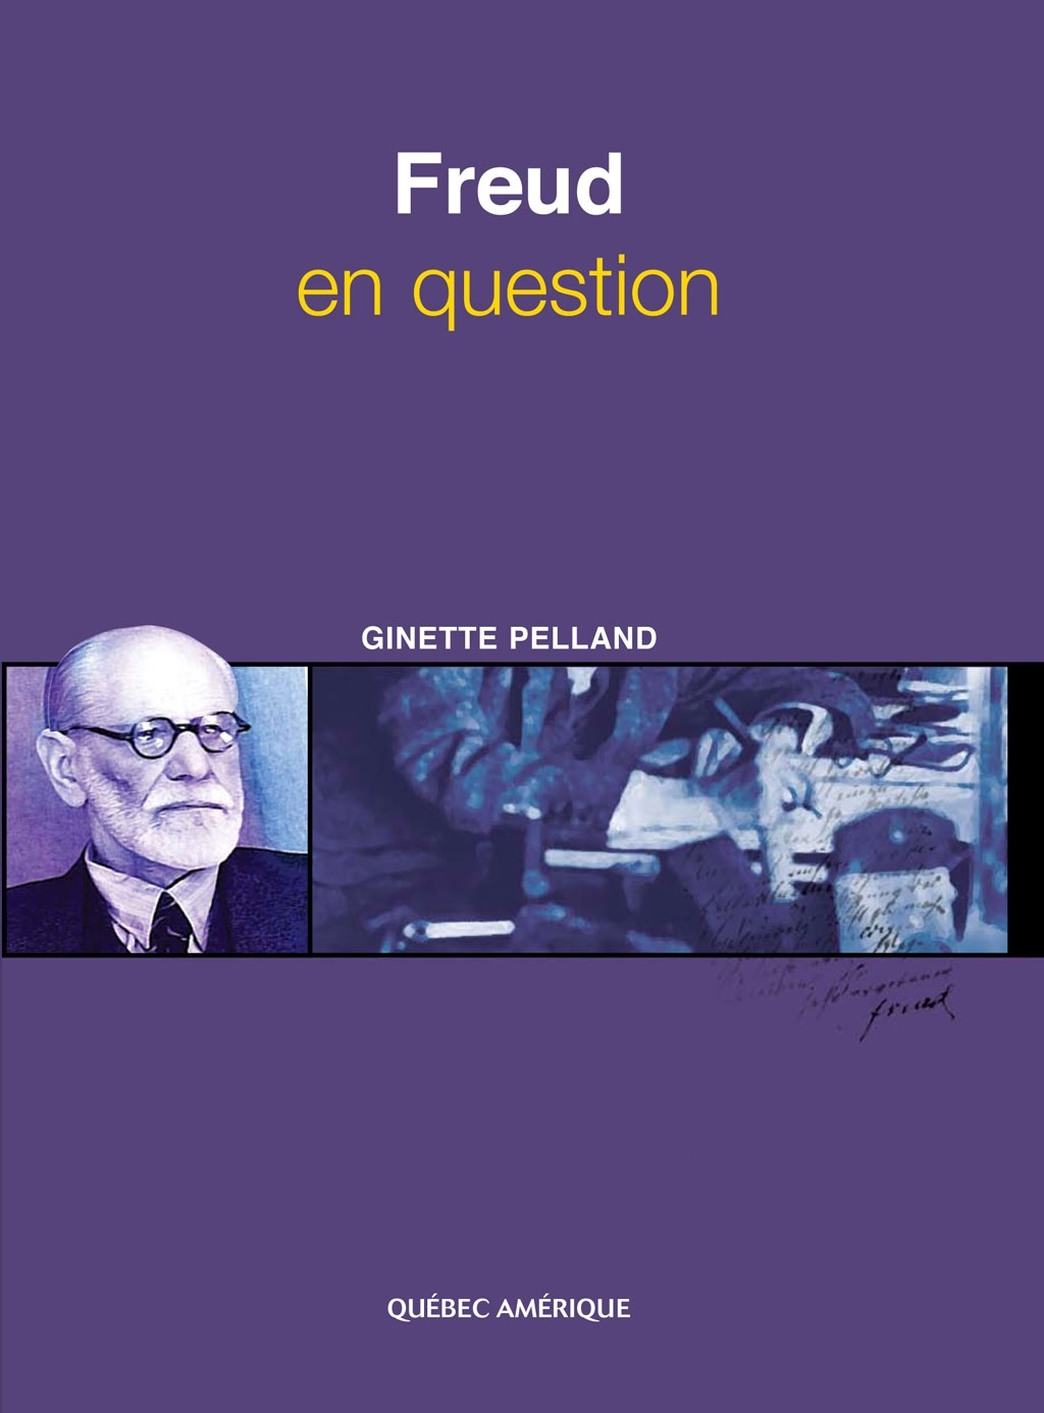 FREUD EN QUESTION